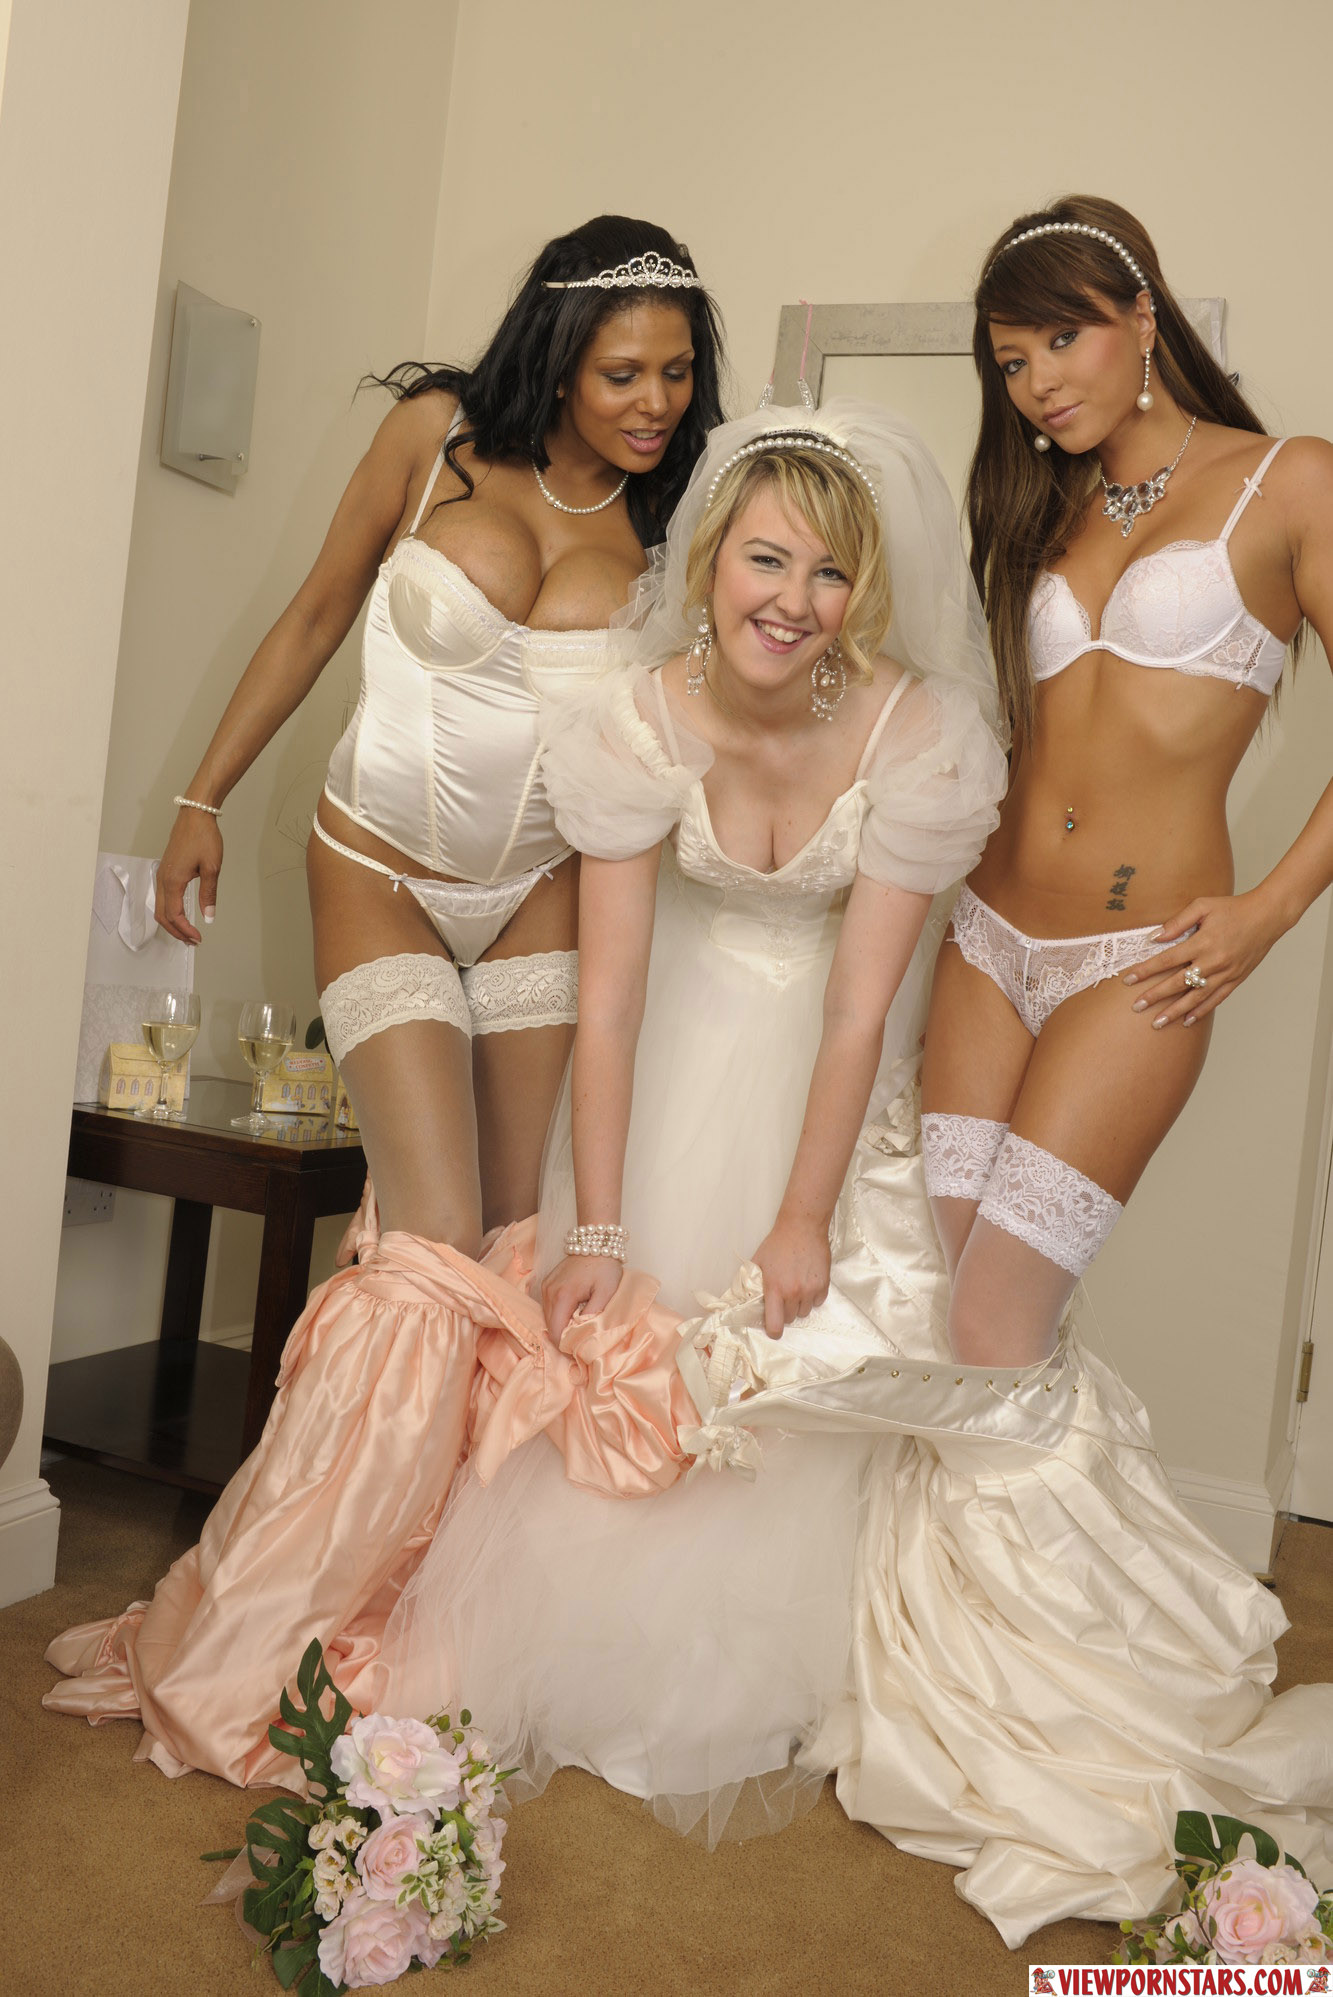 Consider, Bride and bridesmaids porn